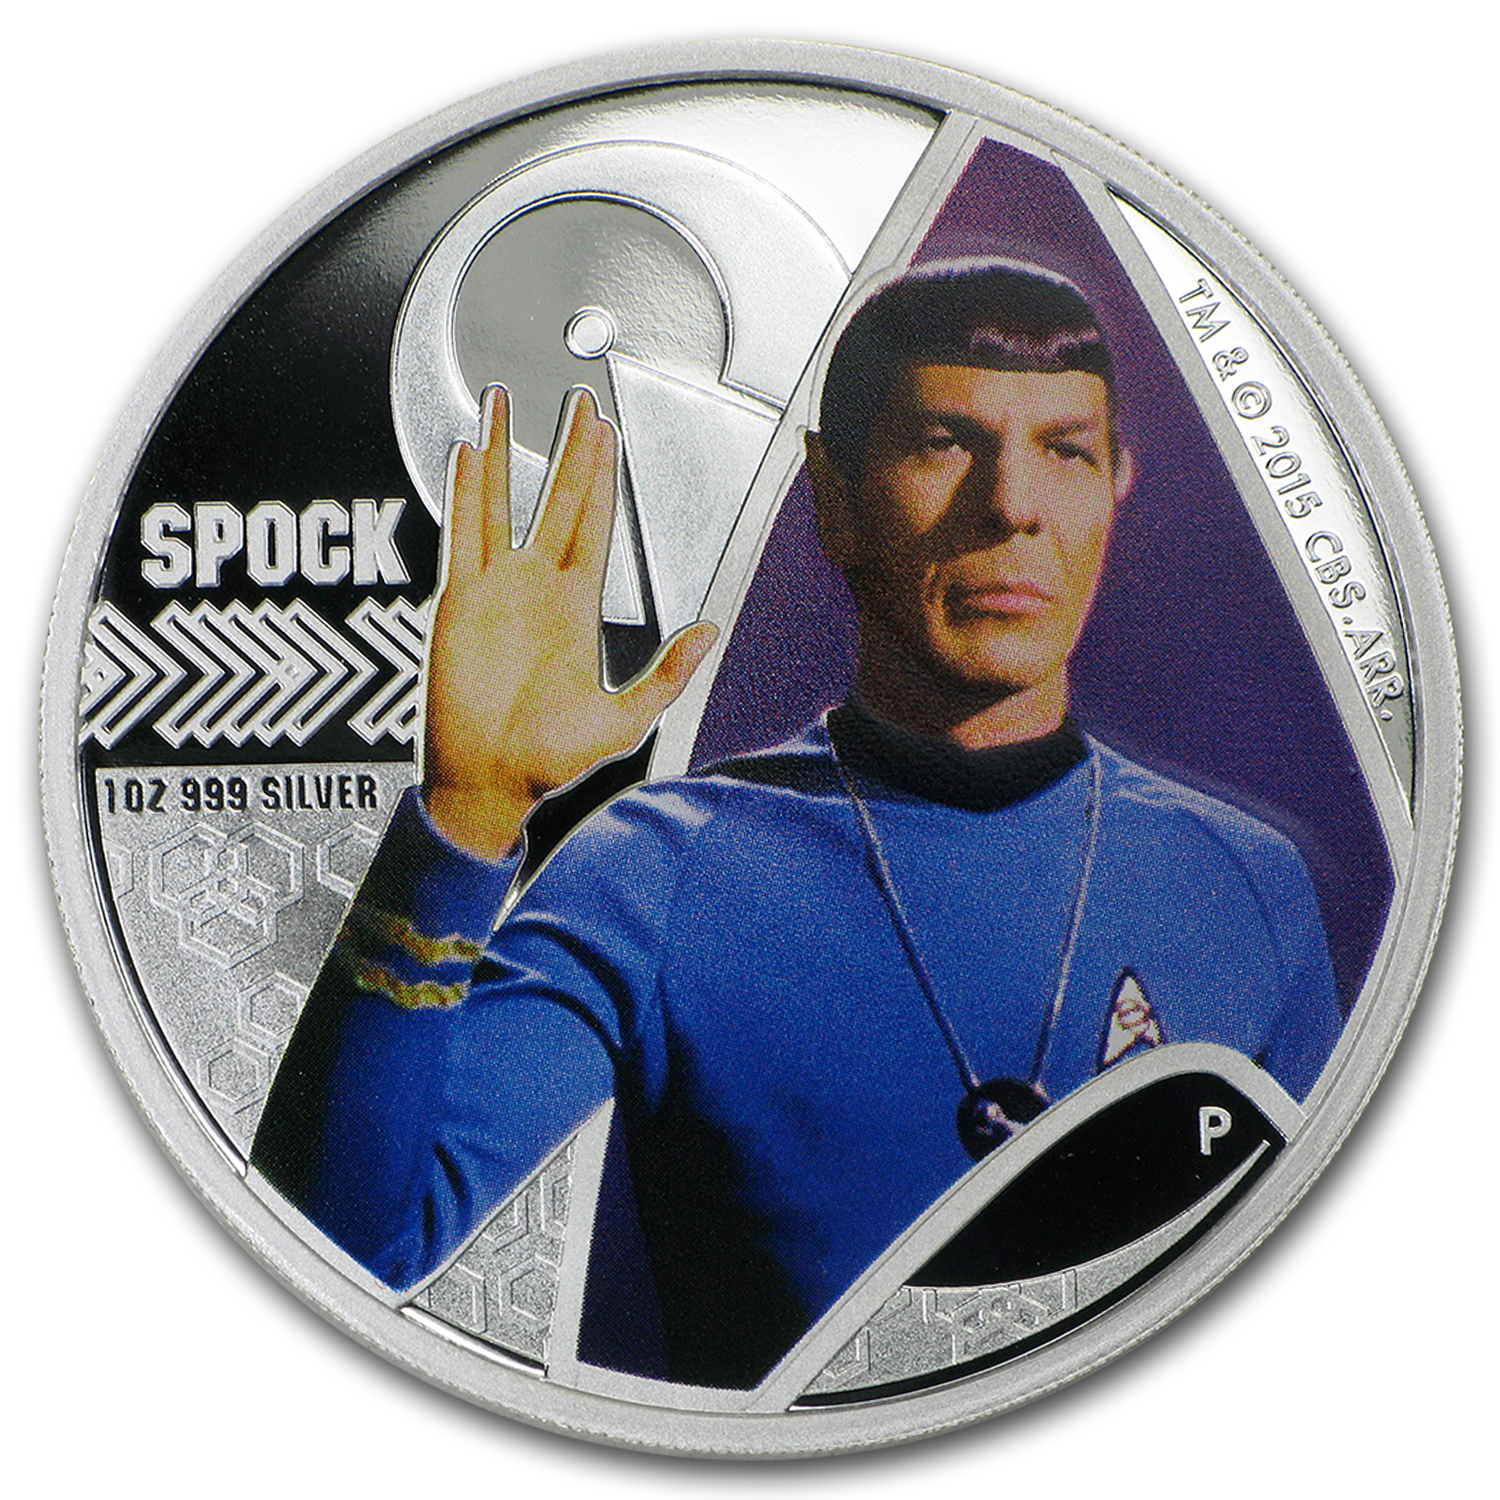 2015 Tuvalu 1 oz Silver Star Trek Colored Proof (Spock)